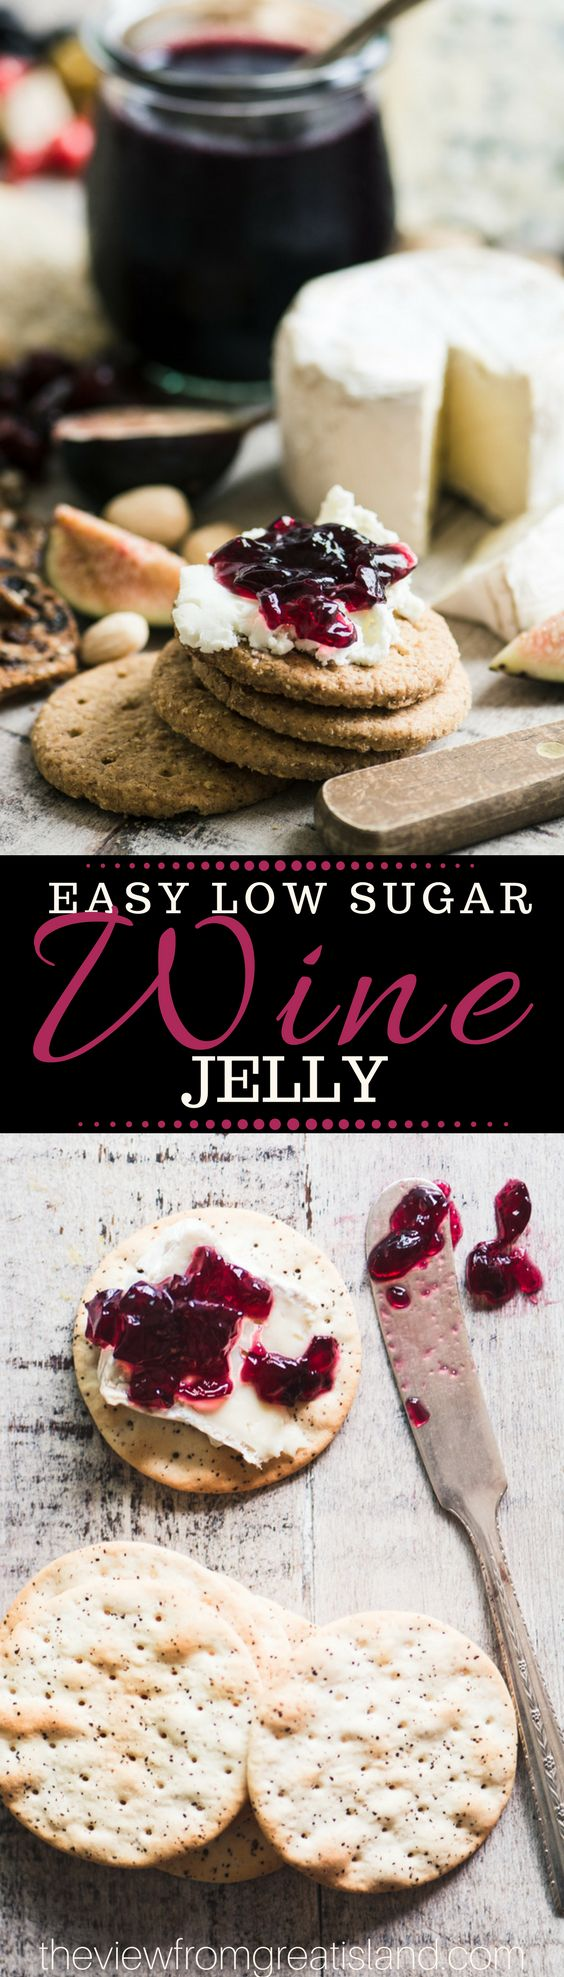 This Easy Low Sugar Wine Jelly Recipe is a joy to make,